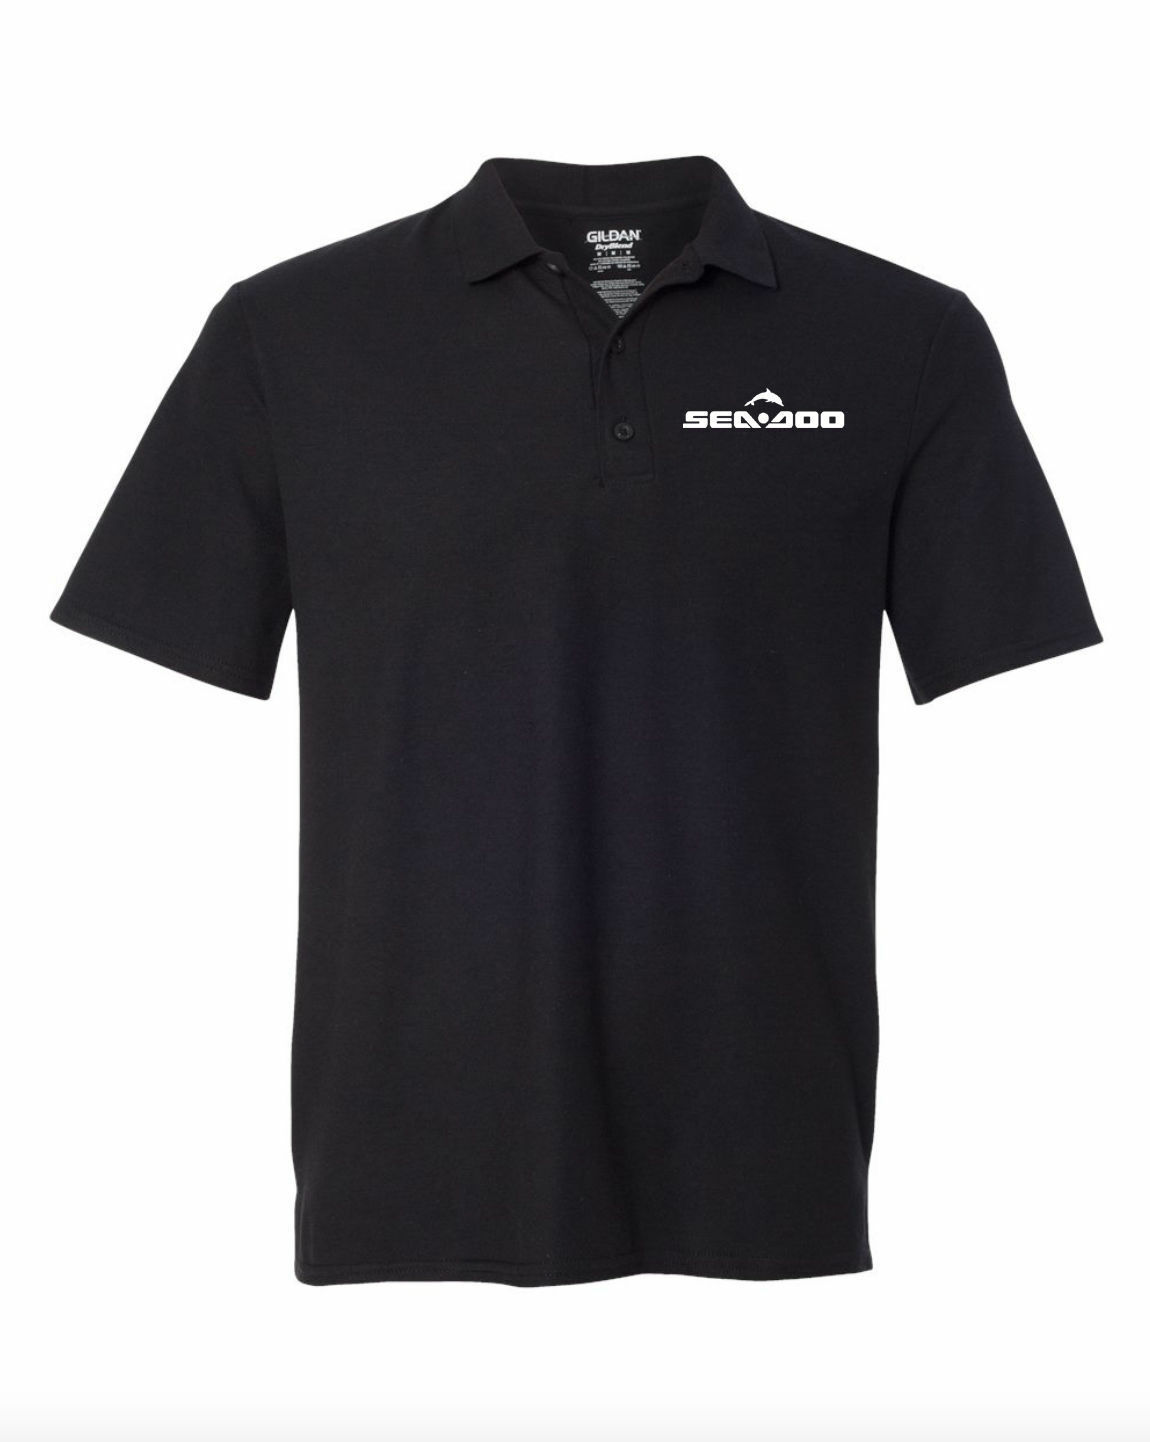 Sea Doo Watercraft  Black POLO T-Shirt Embroidery